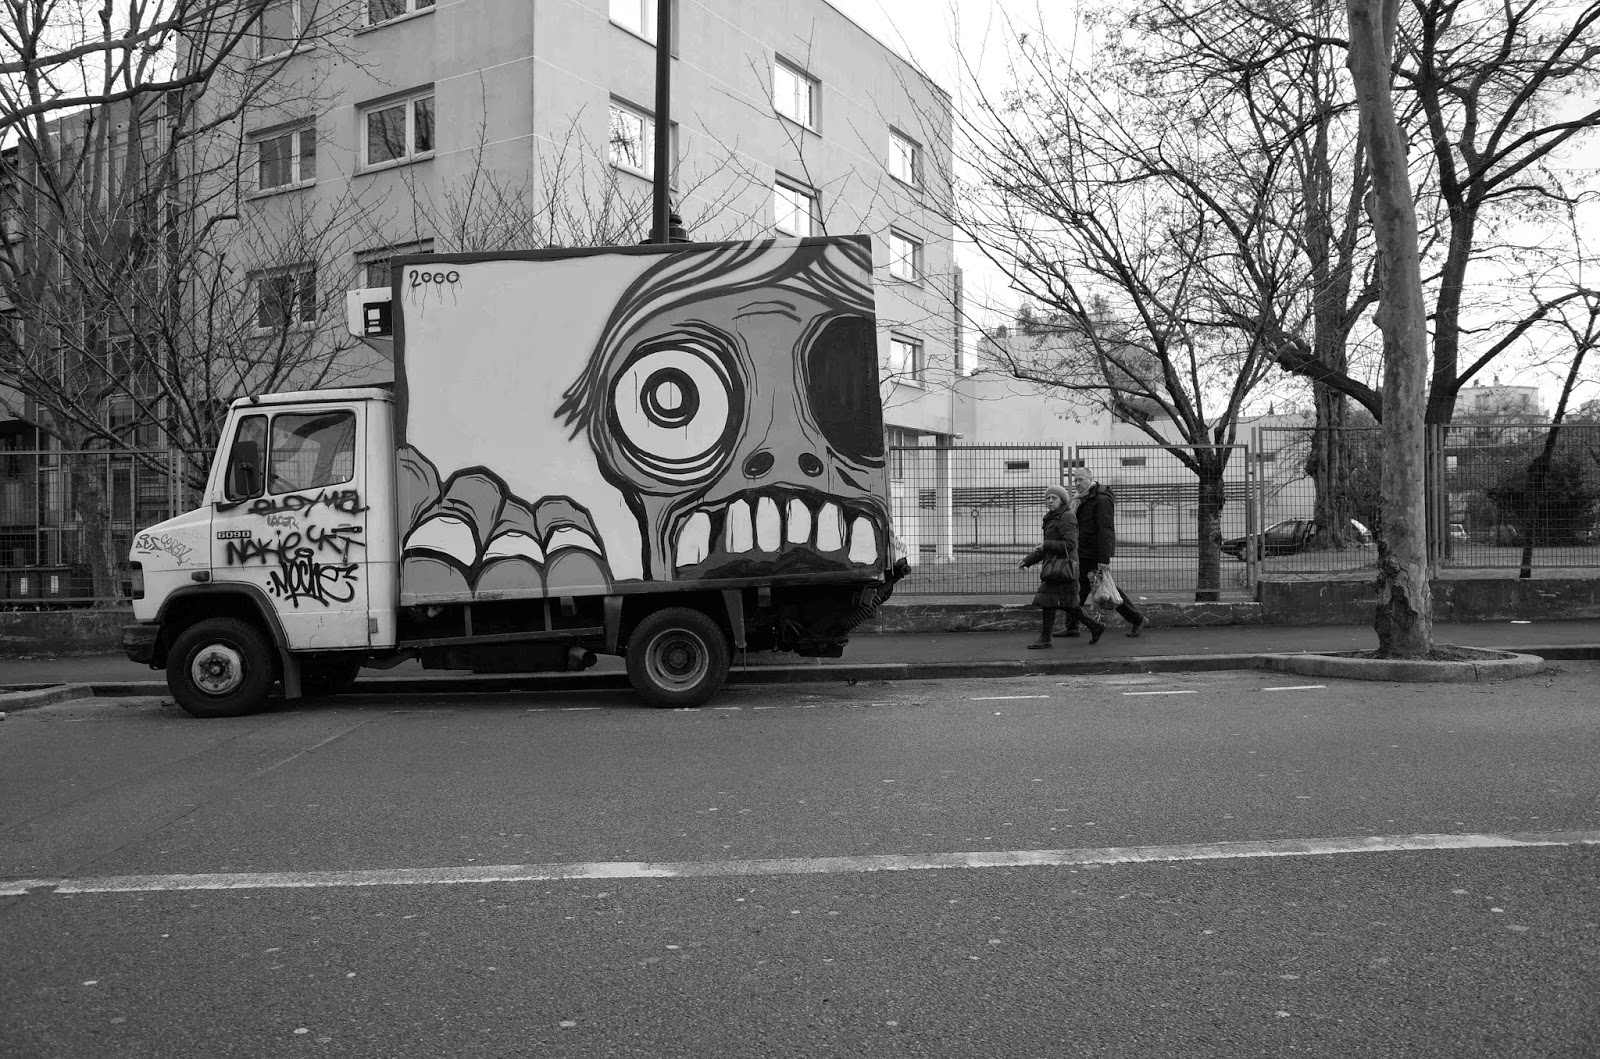 After a tour of Brazil and its Caipirinhas, Mygalo 2000 is back in his hometown of Paris in France where he started taking over more vans and abandoned places.